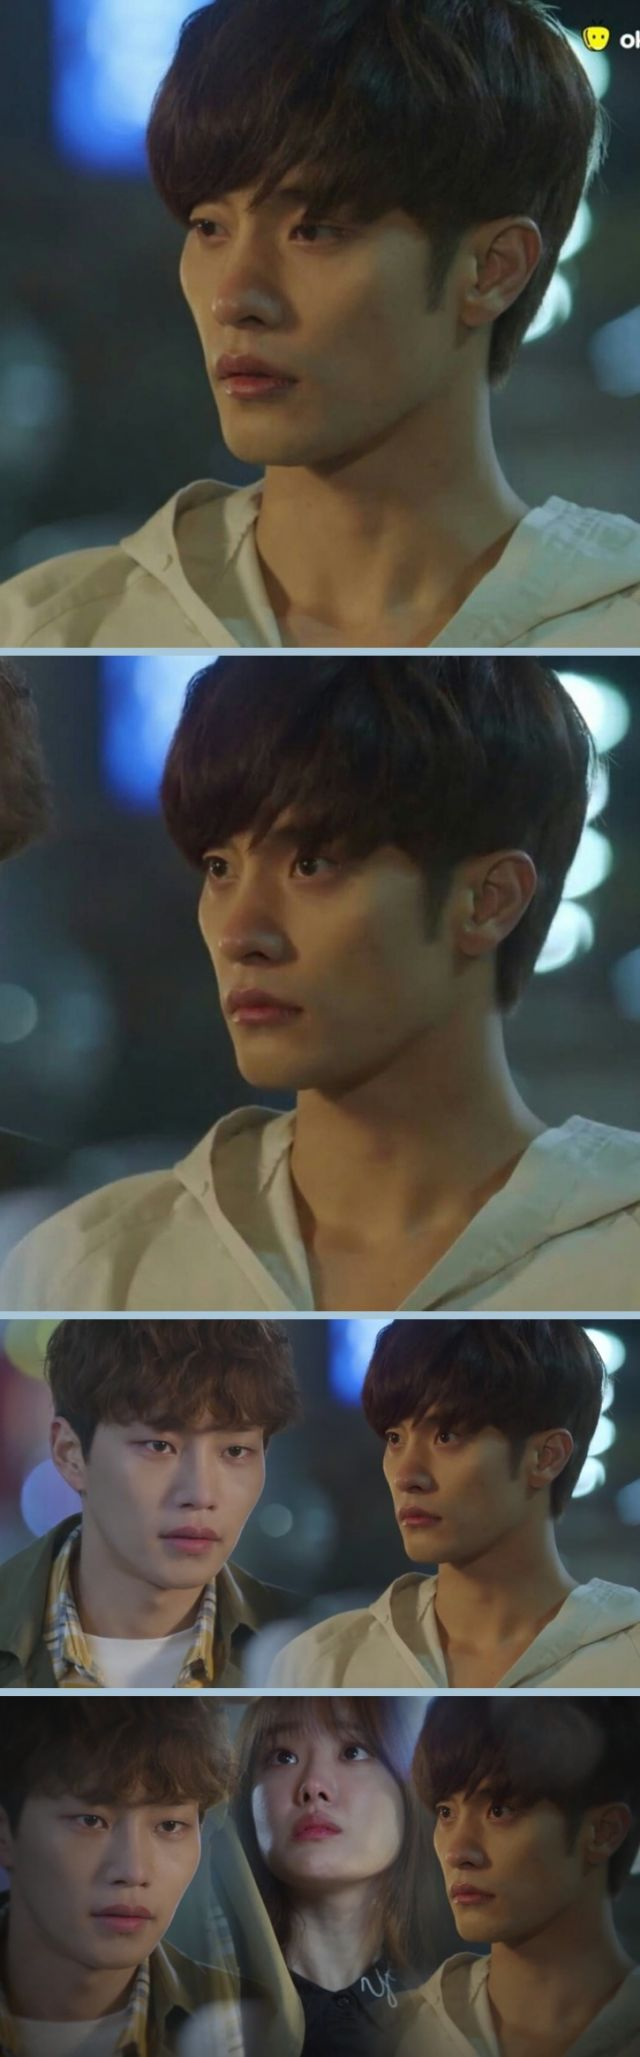 [Spoiler] Added episode 4 captures for the Korean drama 'My Secret Romance'